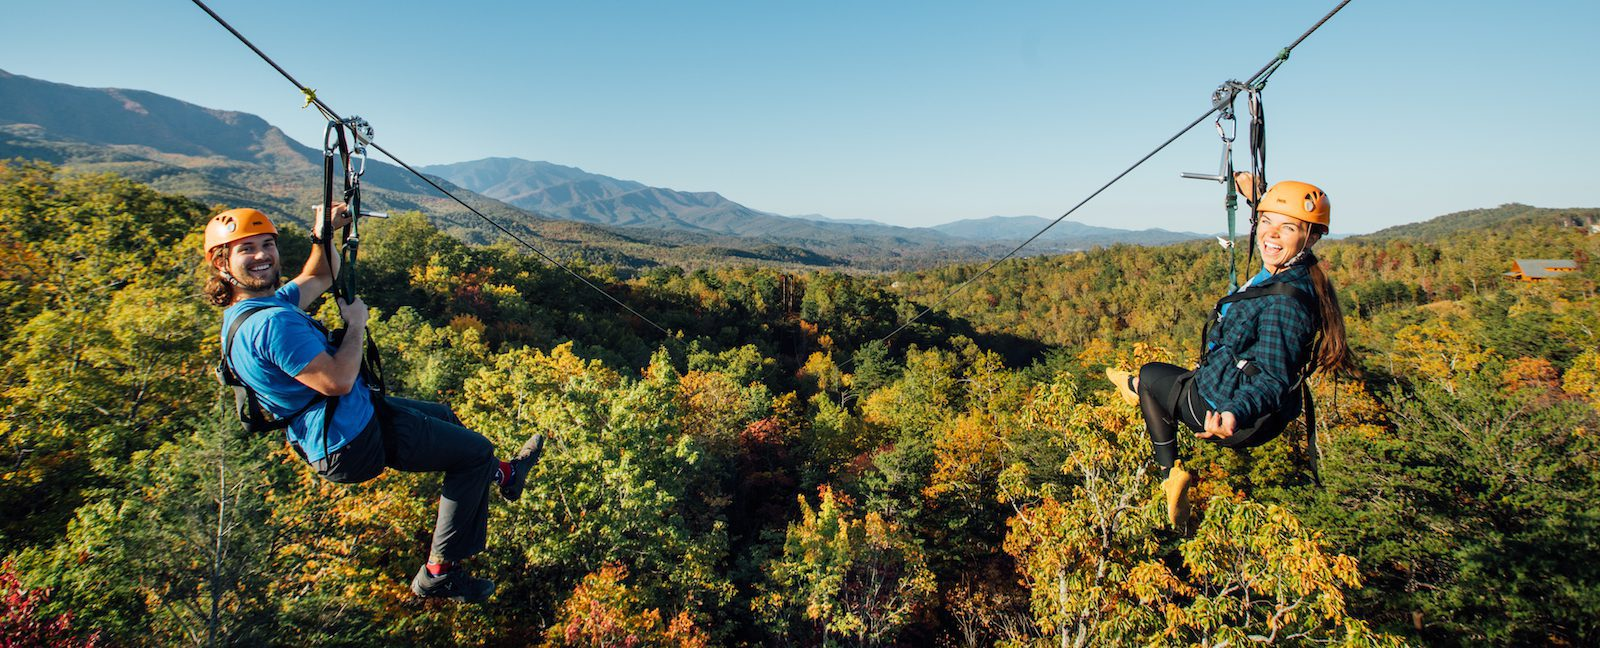 All Your Questions About Ziplining in Gatlinburg, TN Answered